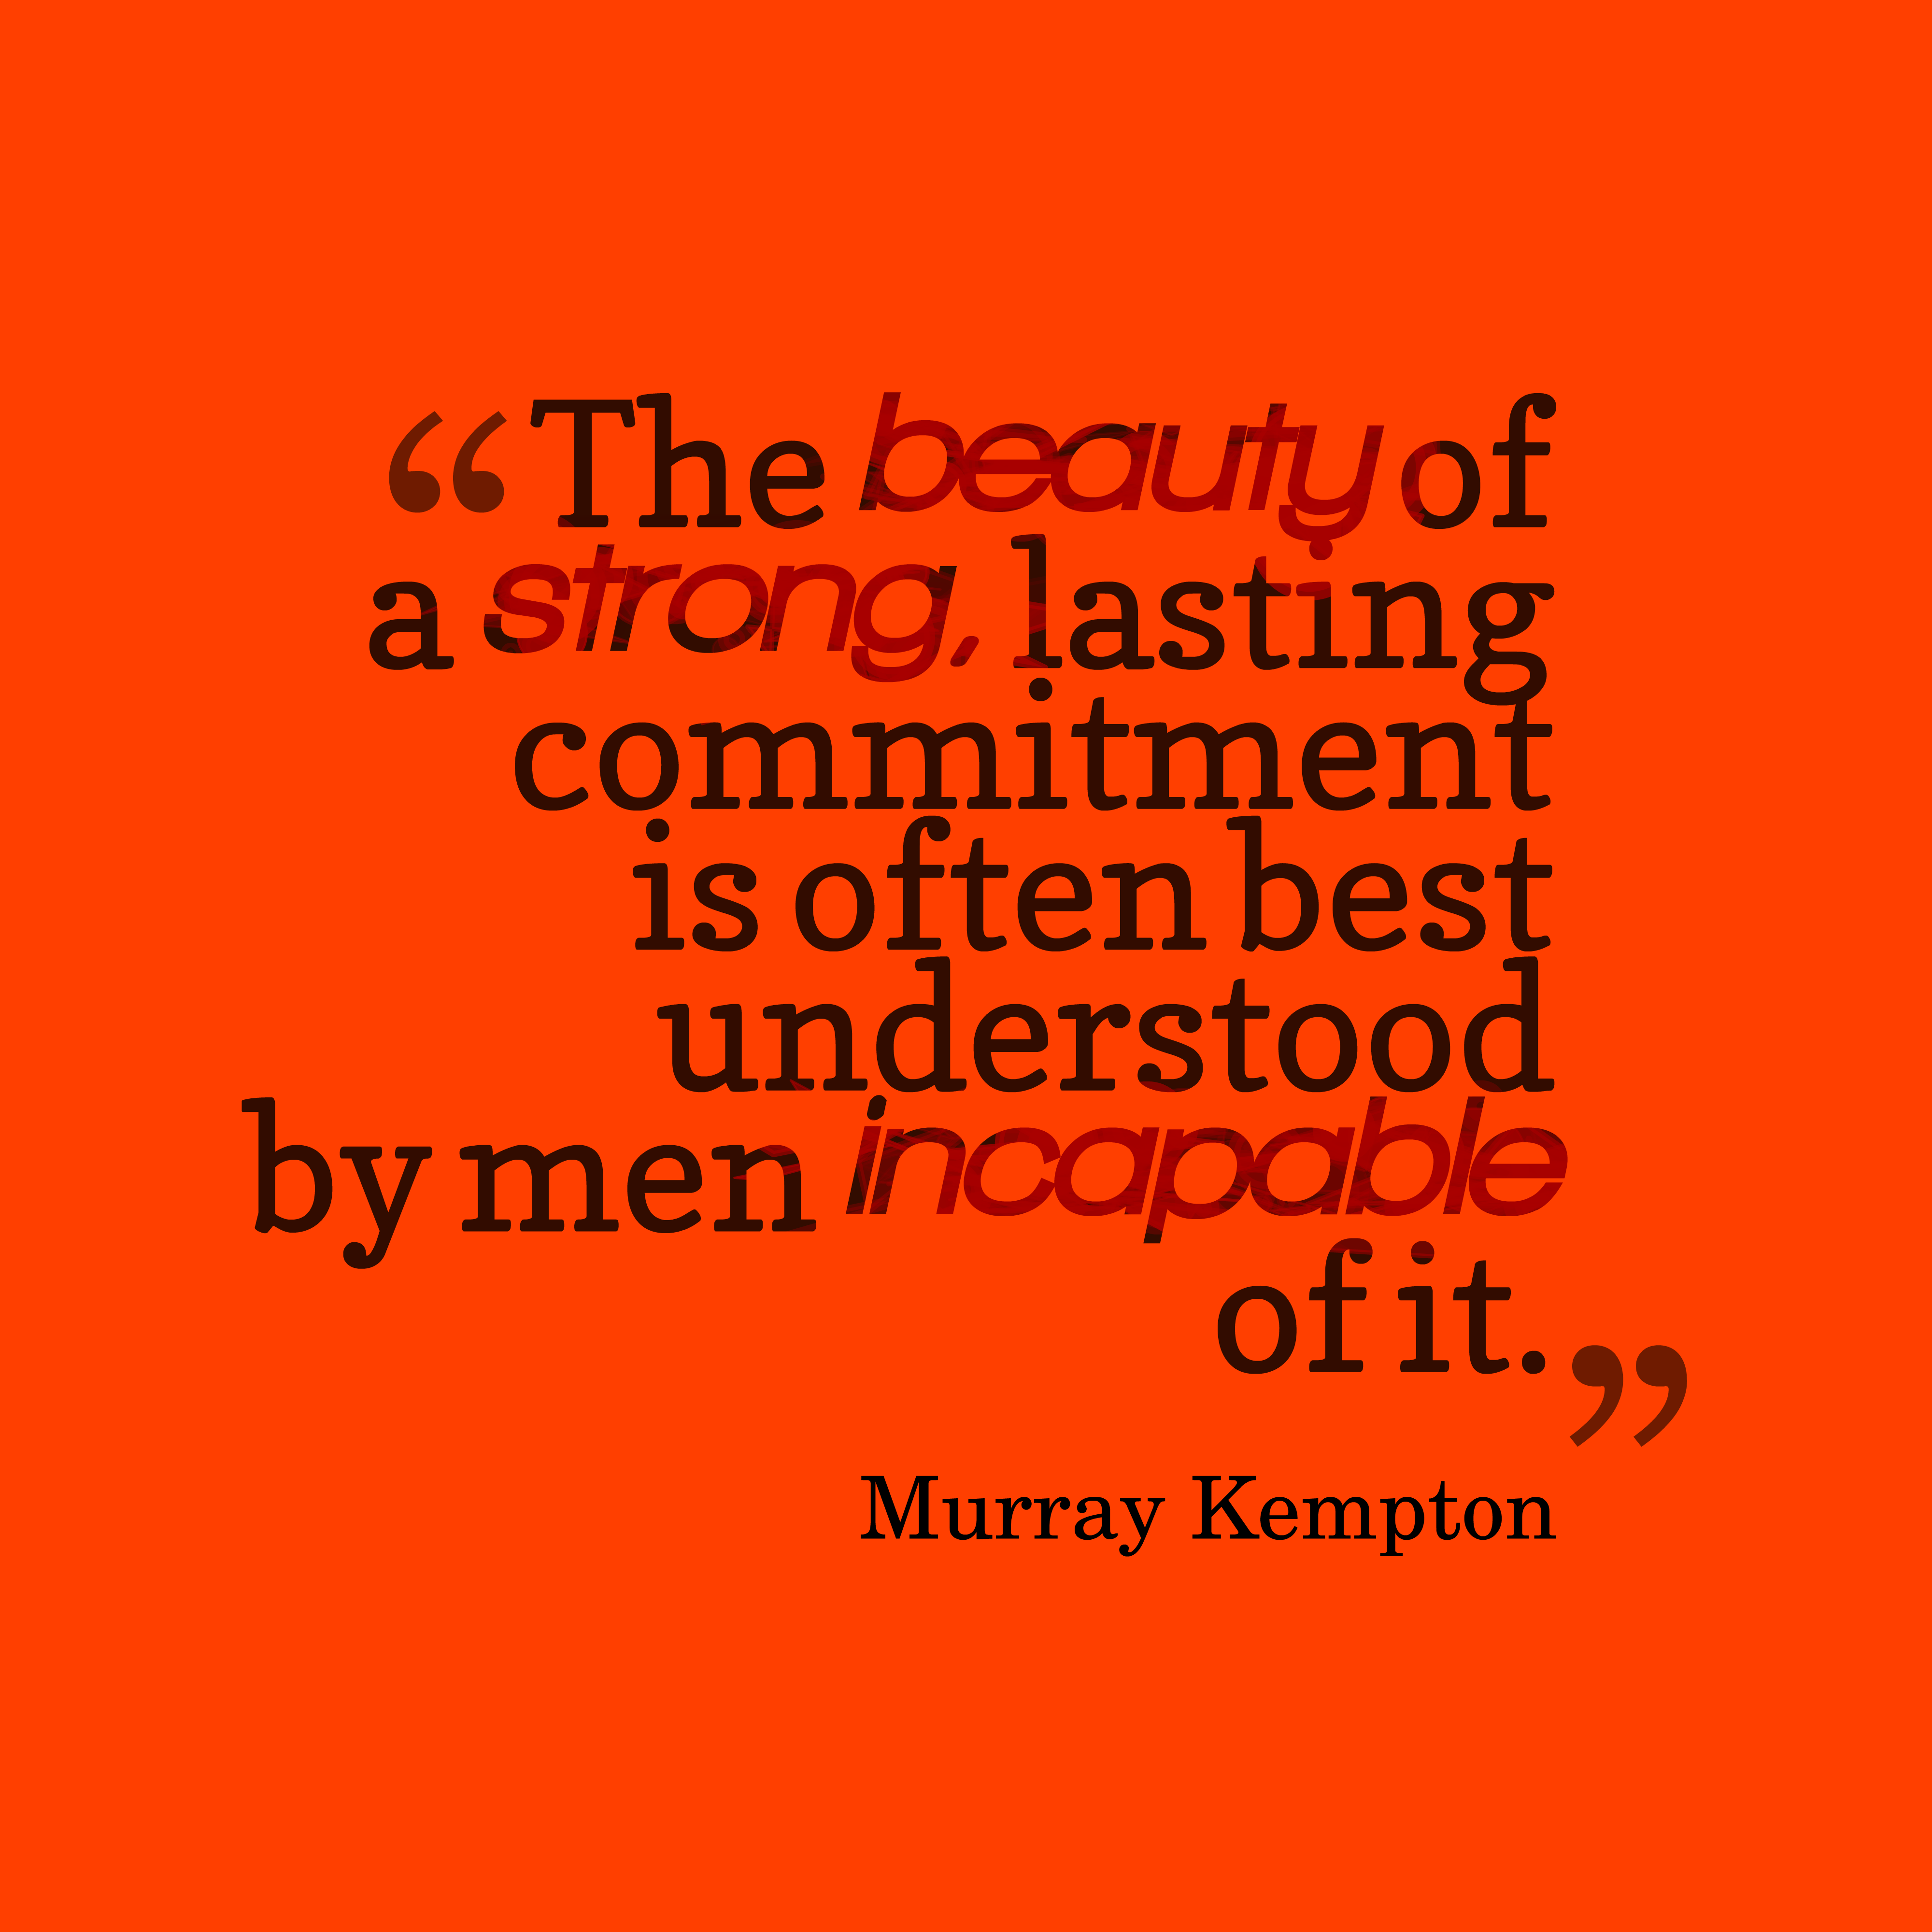 Murray Kempton Quote About Men